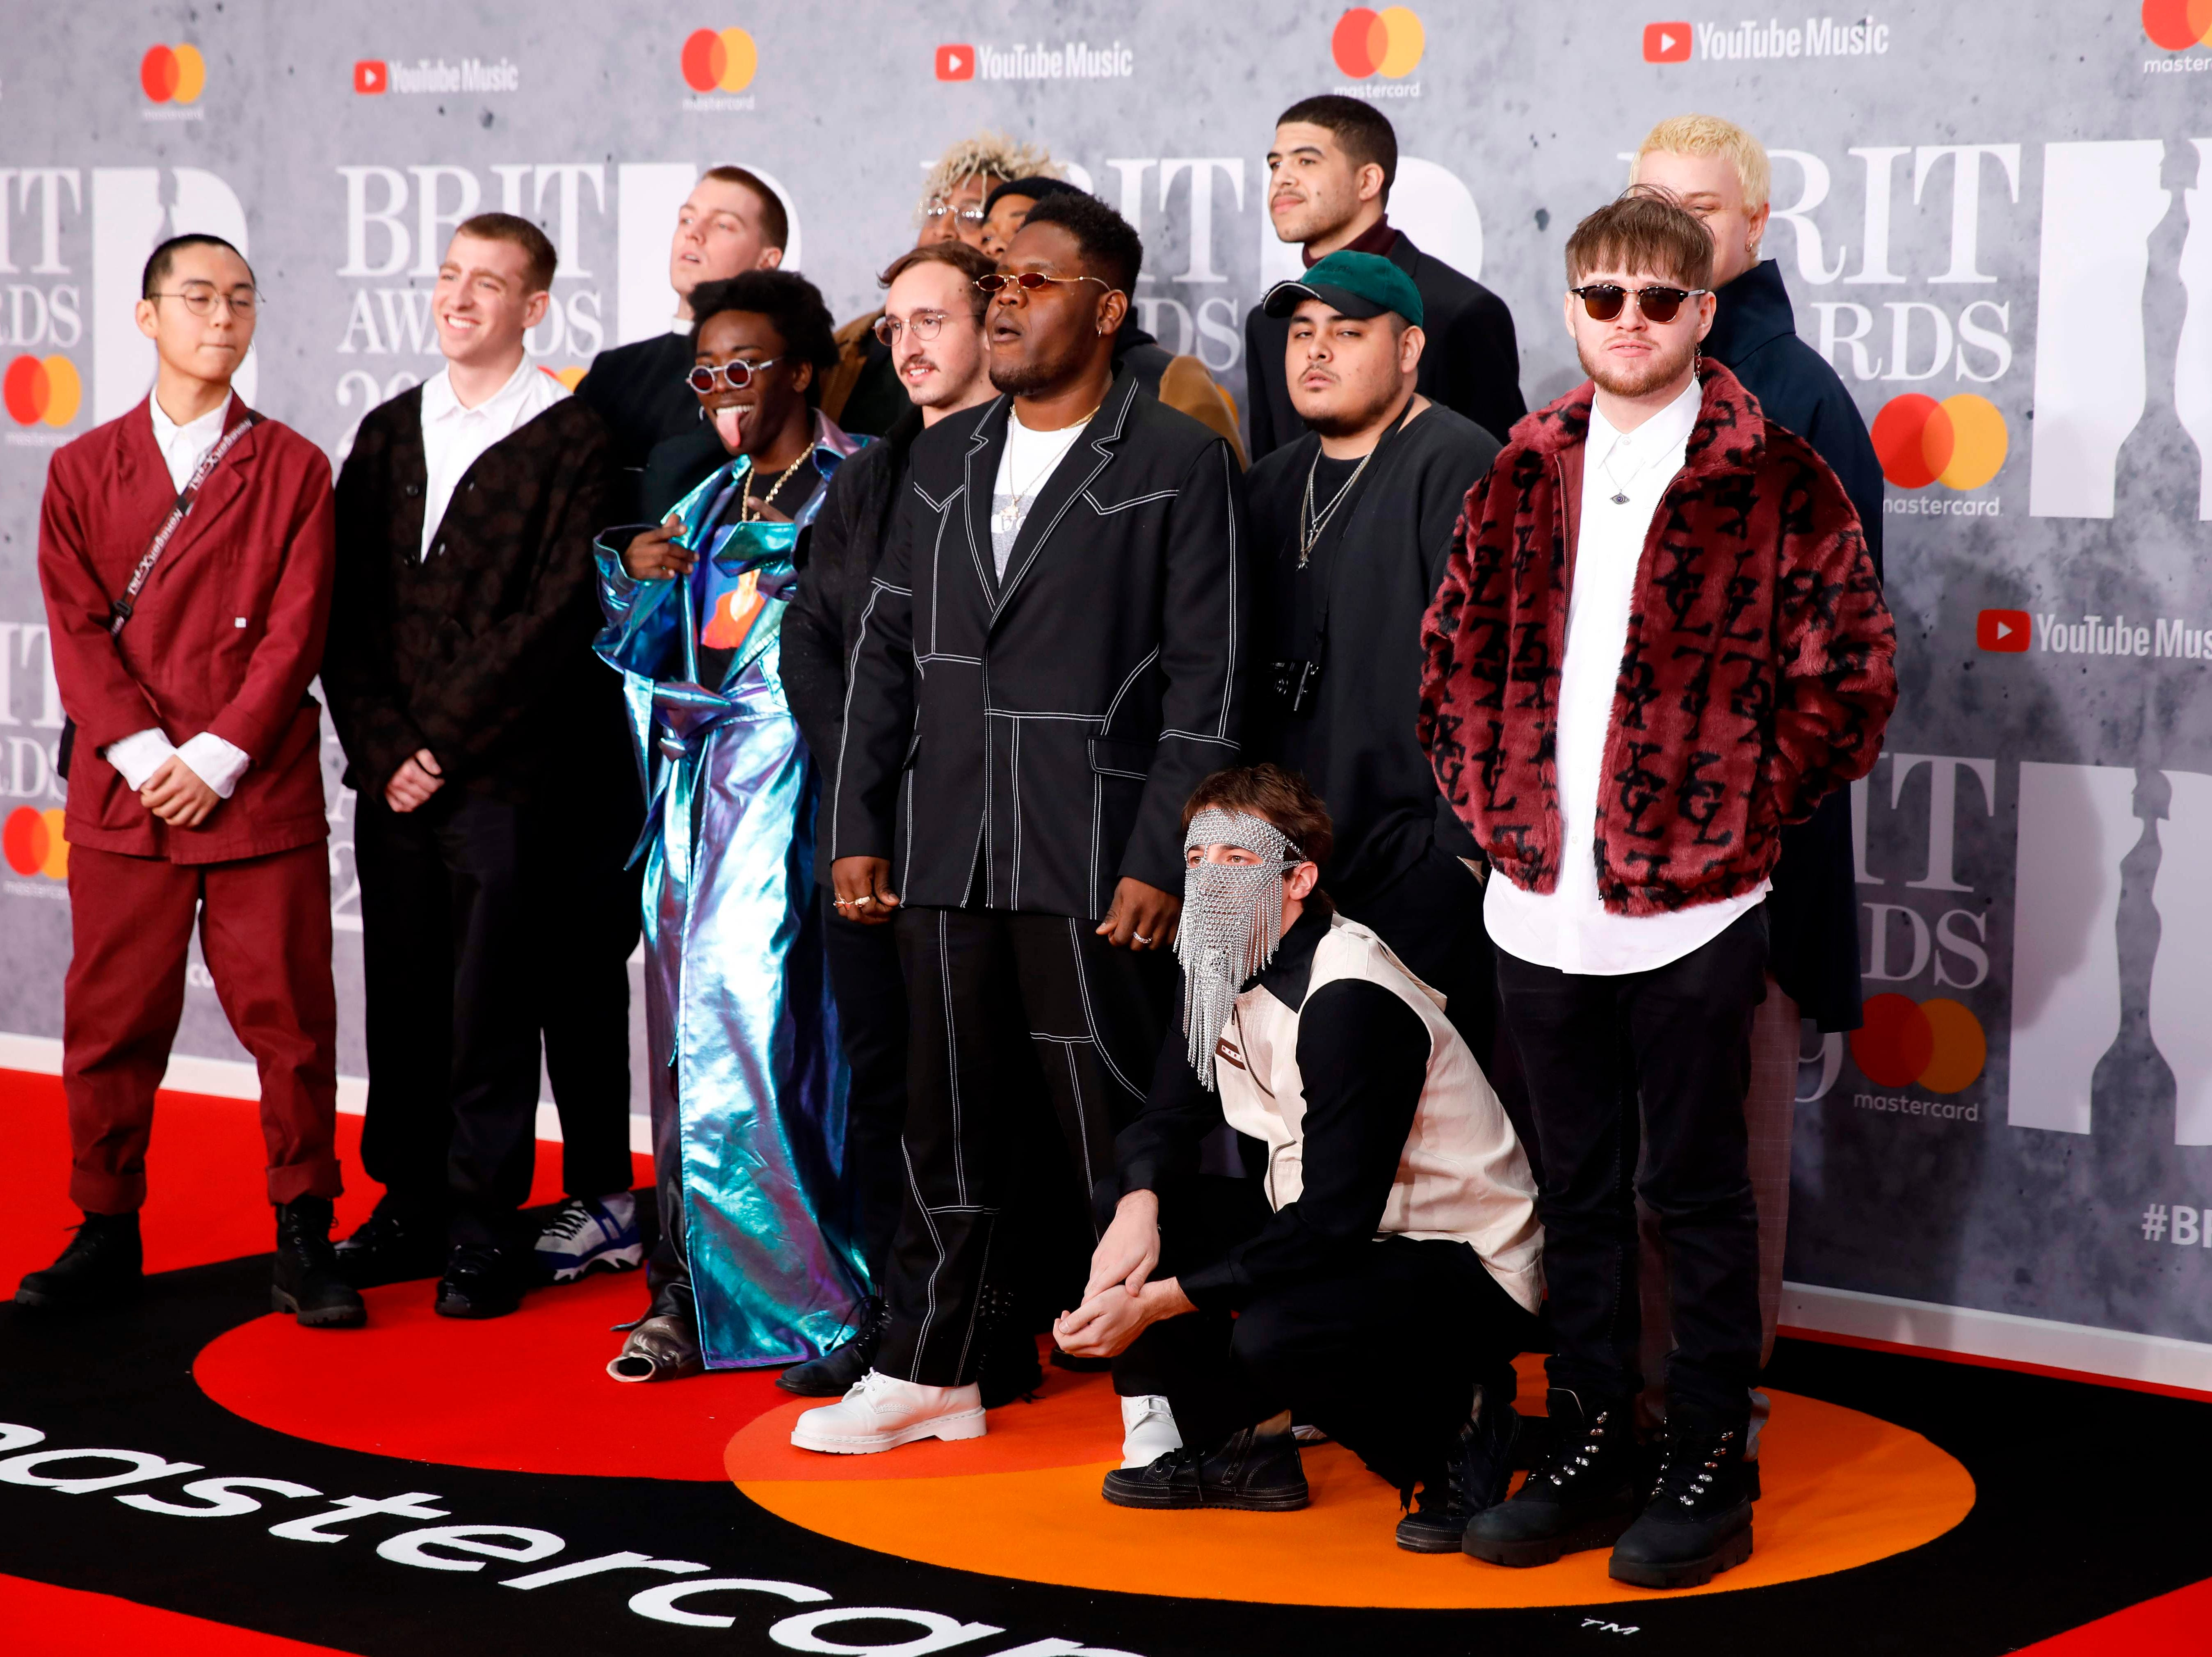 US music collective 'Brockhampton' pose on the red carpet on arrival for the BRIT Awards 2019 in London on February 20, 2019. (Photo by Tolga AKMEN / AFP) / RESTRICTED TO EDITORIAL USE  NO POSTERS  NO MERCHANDISE NO USE IN PUBLICATIONS DEVOTED TO ARTISTSTOLGA AKMEN/AFP/Getty Images ORIG FILE ID: AFP_1DO0VR